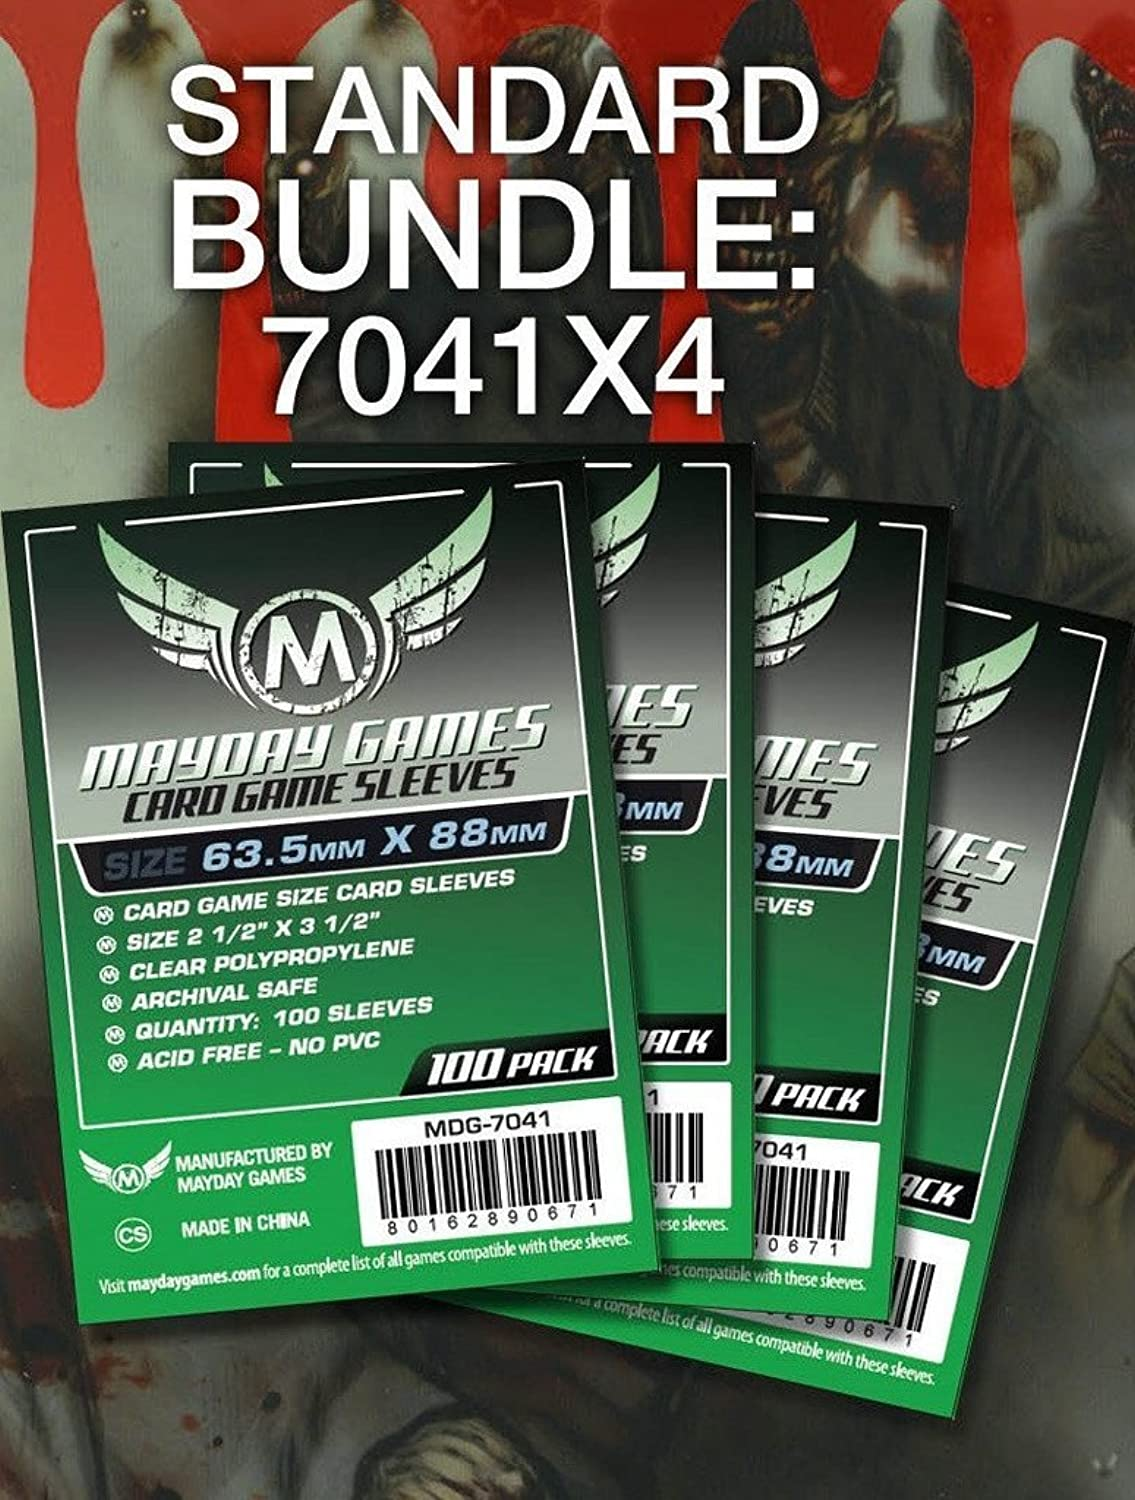 Mayday Game Card Sleeves 2 1 2 X 3 1 2 (4x100 Pack, 400 sleeves) by Mayday Games